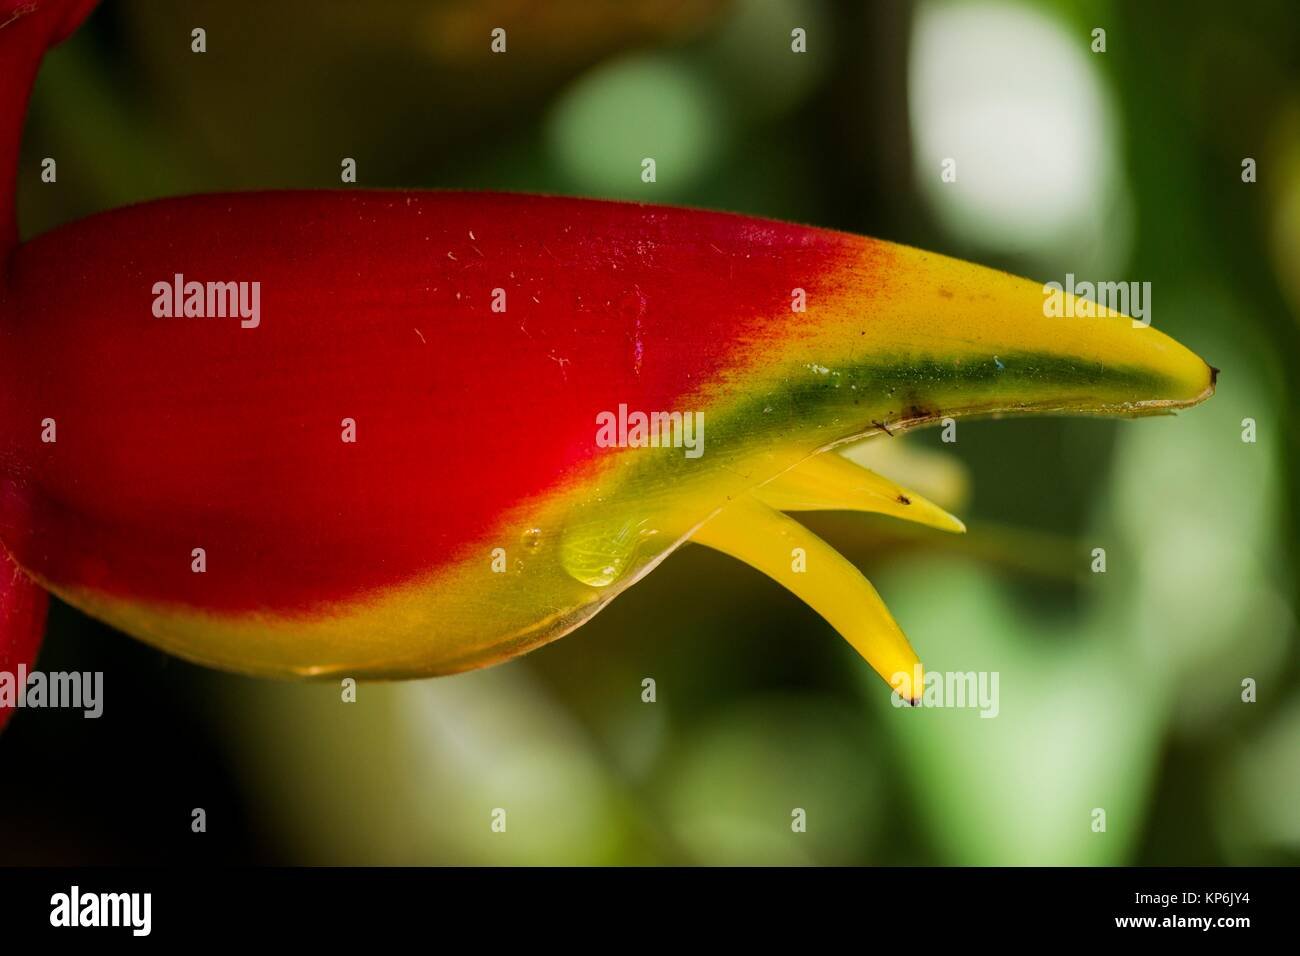 Macro view of a lobster-claw heliconia (Heliconia rostrata) bract revealing the small inner flower. - Stock Image